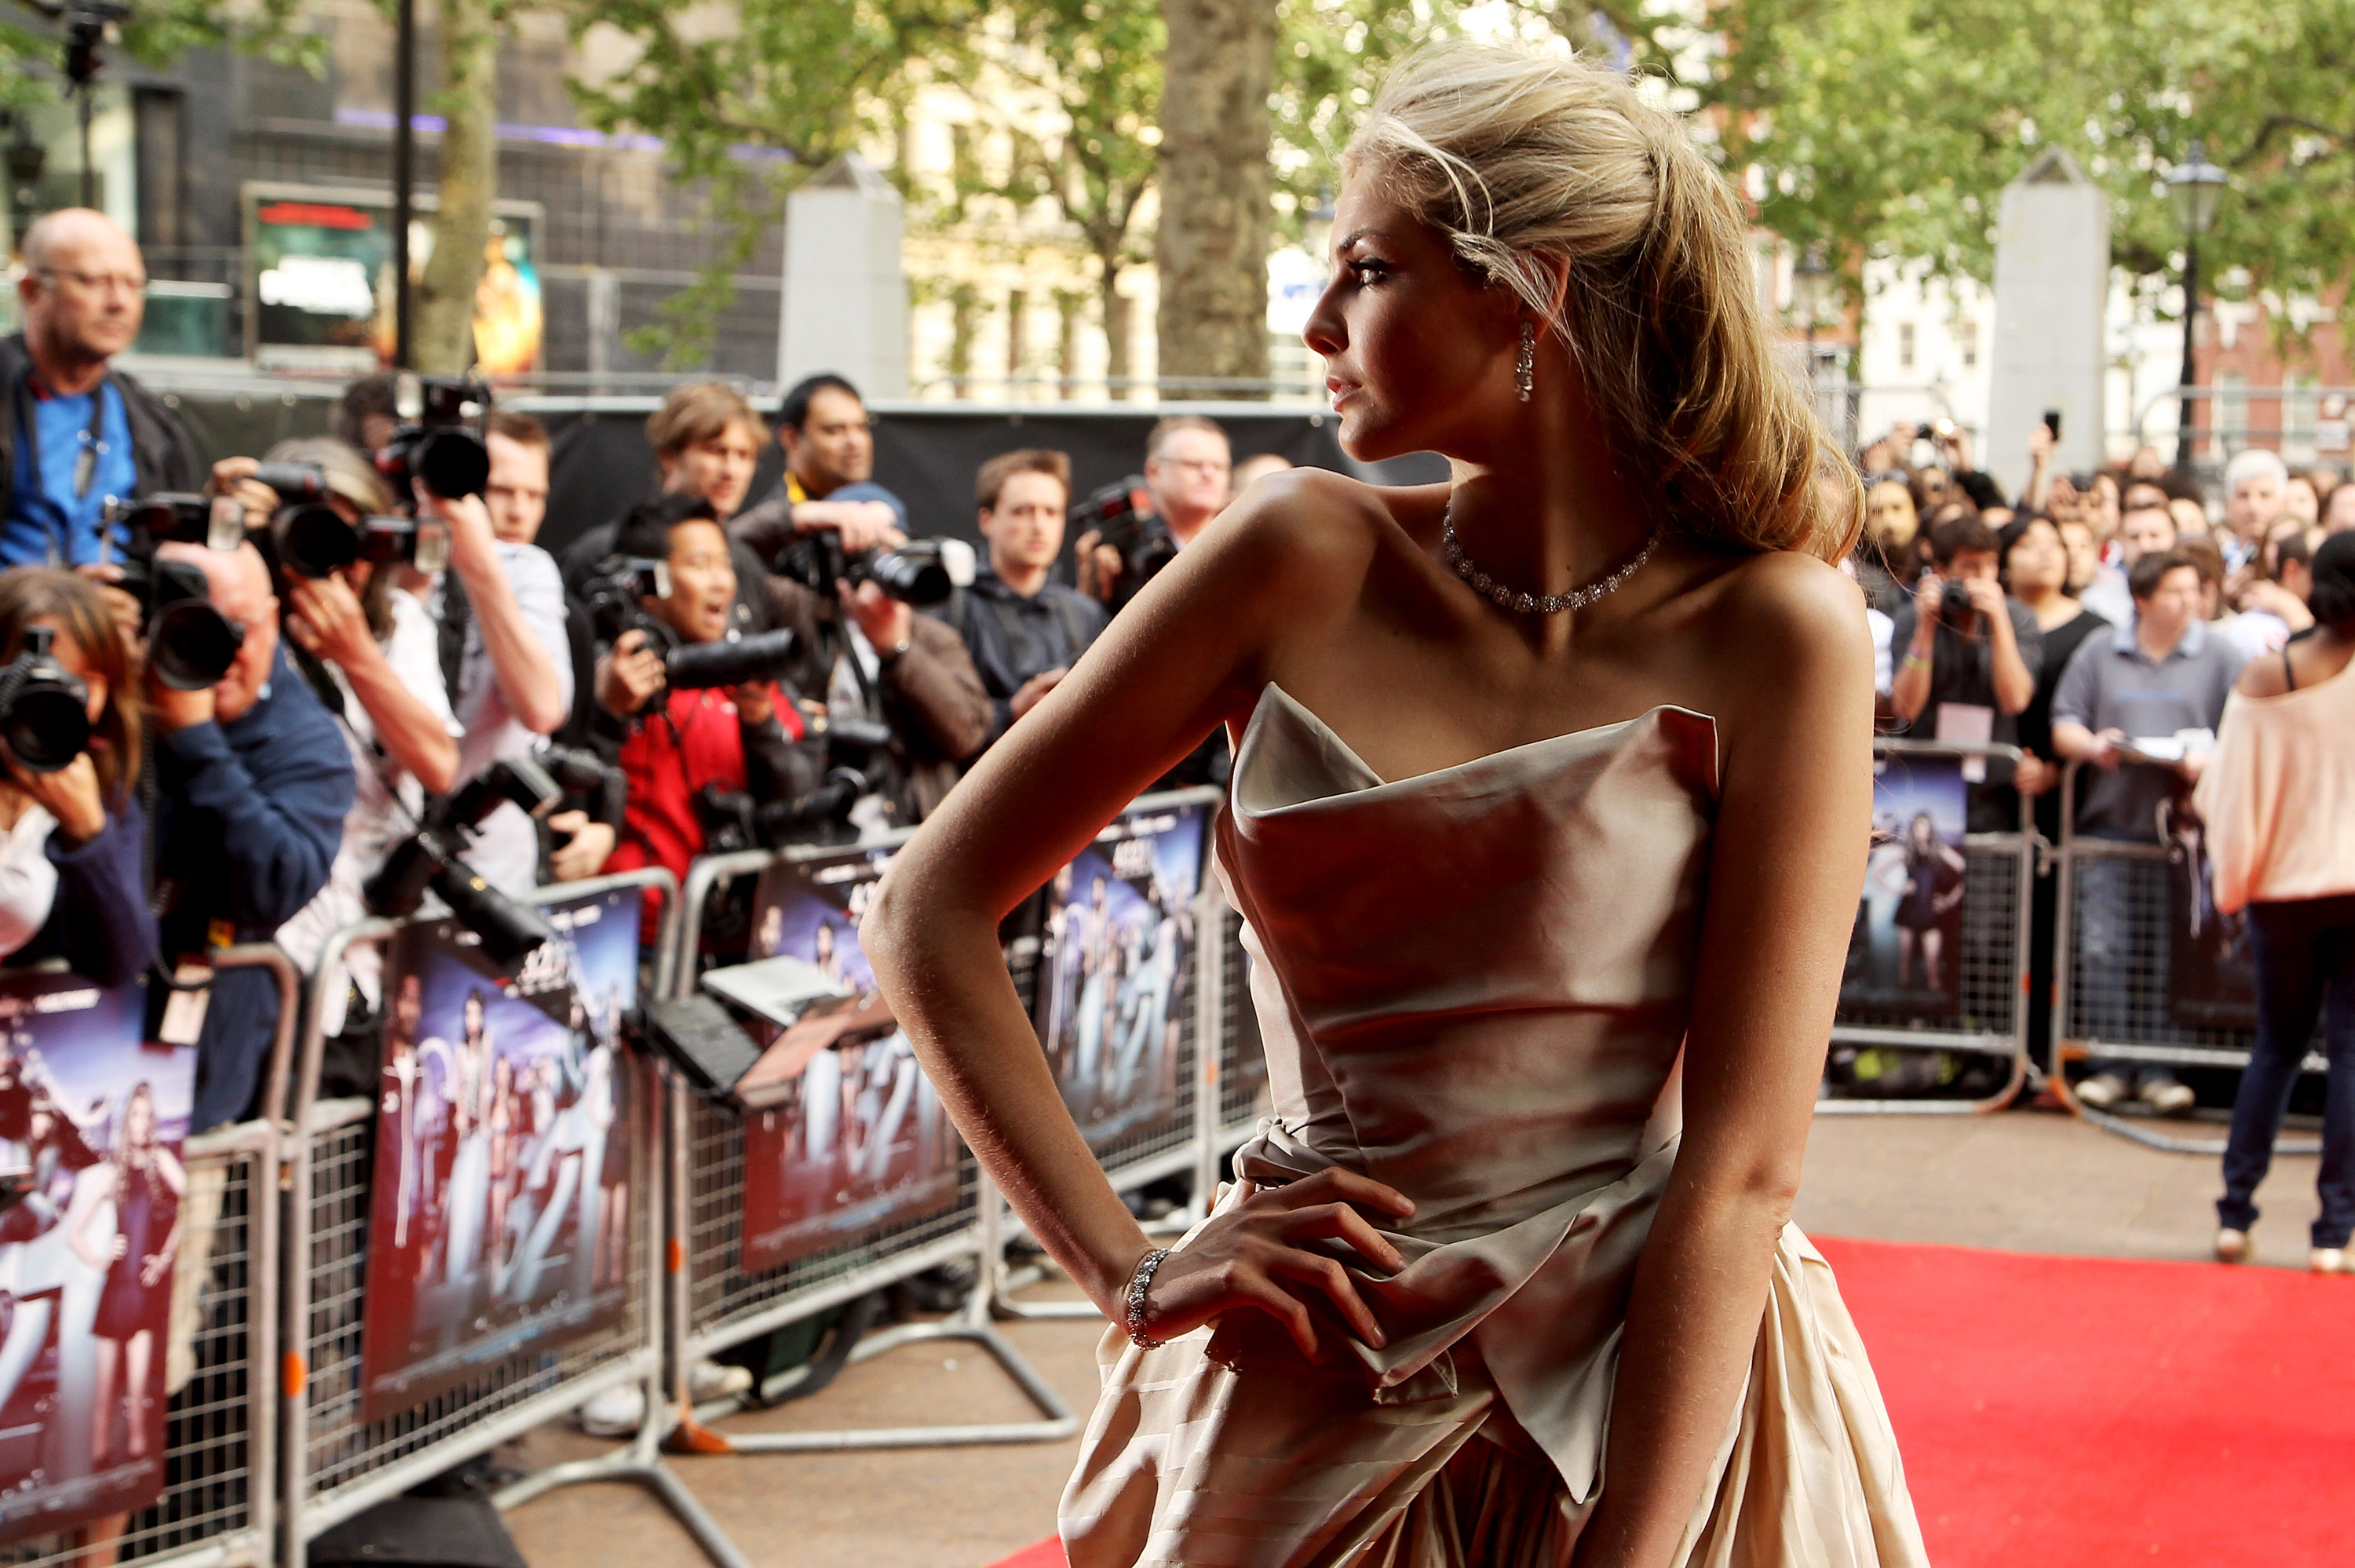 LONDON, ENGLAND - MAY 25:  (UK TABLOID NEWSPAPERS OUT) Tamsin Egerton attends the world premiere of 4.3.2.1 held at The Empire Leicester Square on May 25, 2010 in London, England.  (Photo by Fergus McDonald/Getty Images)